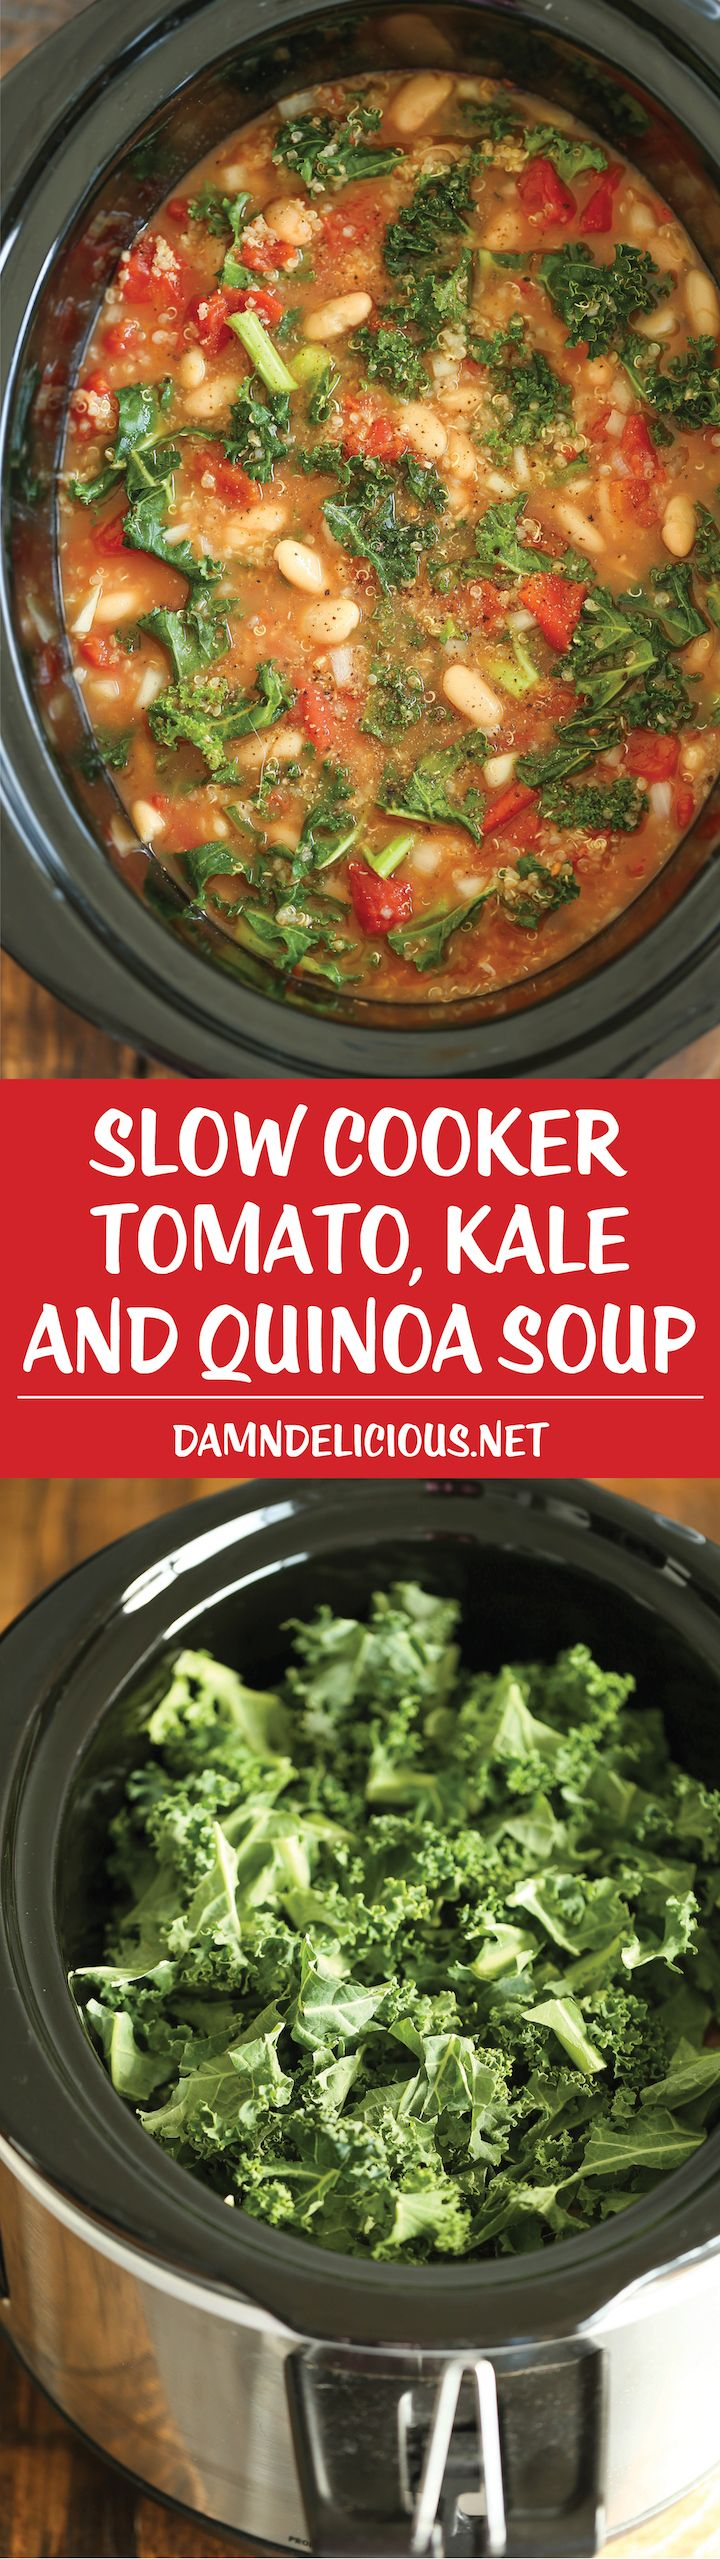 slow cooker tomato kale and quinoa soup - Can I Freeze Kale